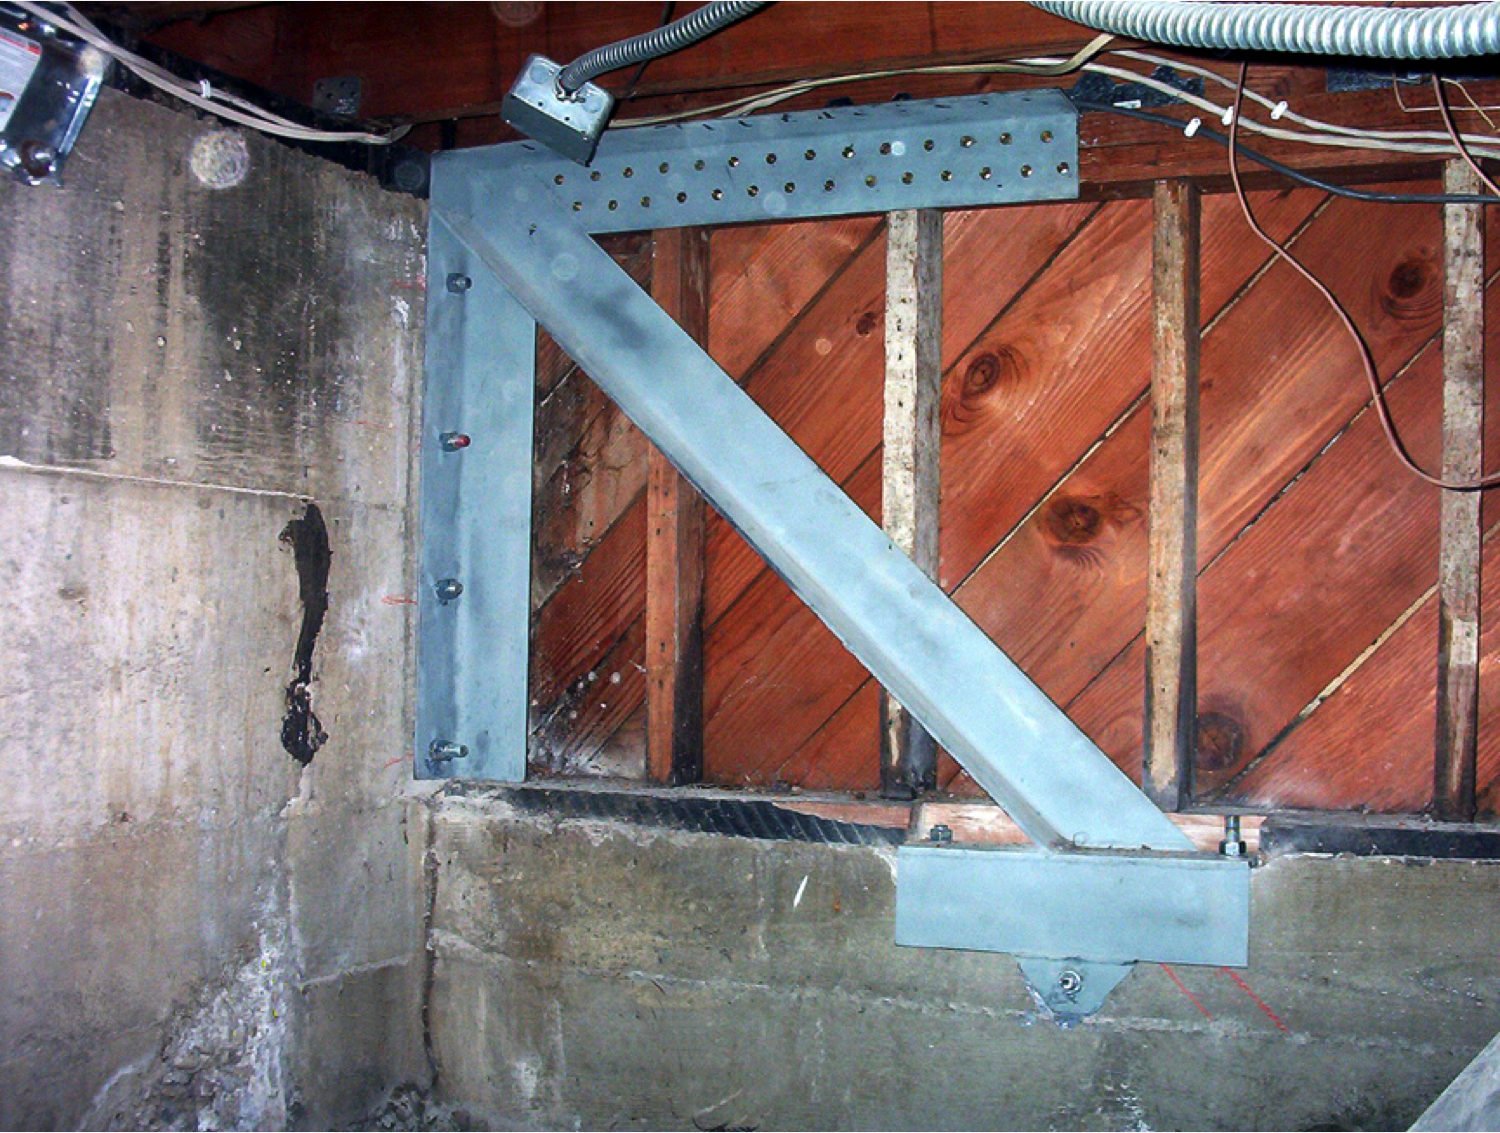 Primary anchor used in hillside home retrofits